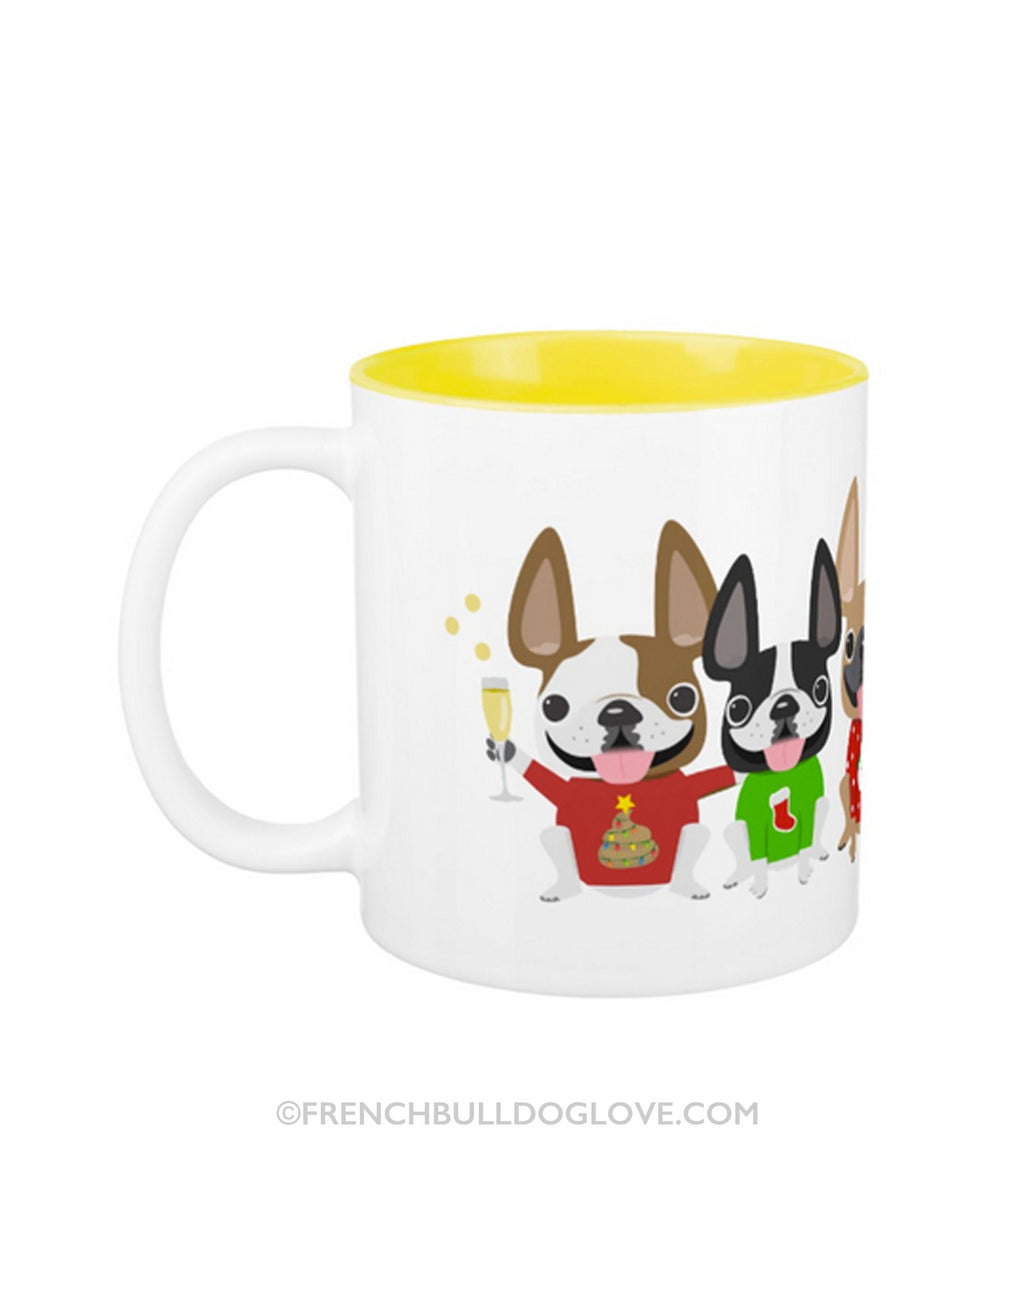 Ugly Sweater French Bulldog Coffee Mug 2 SIZES - French Bulldog Love - 4